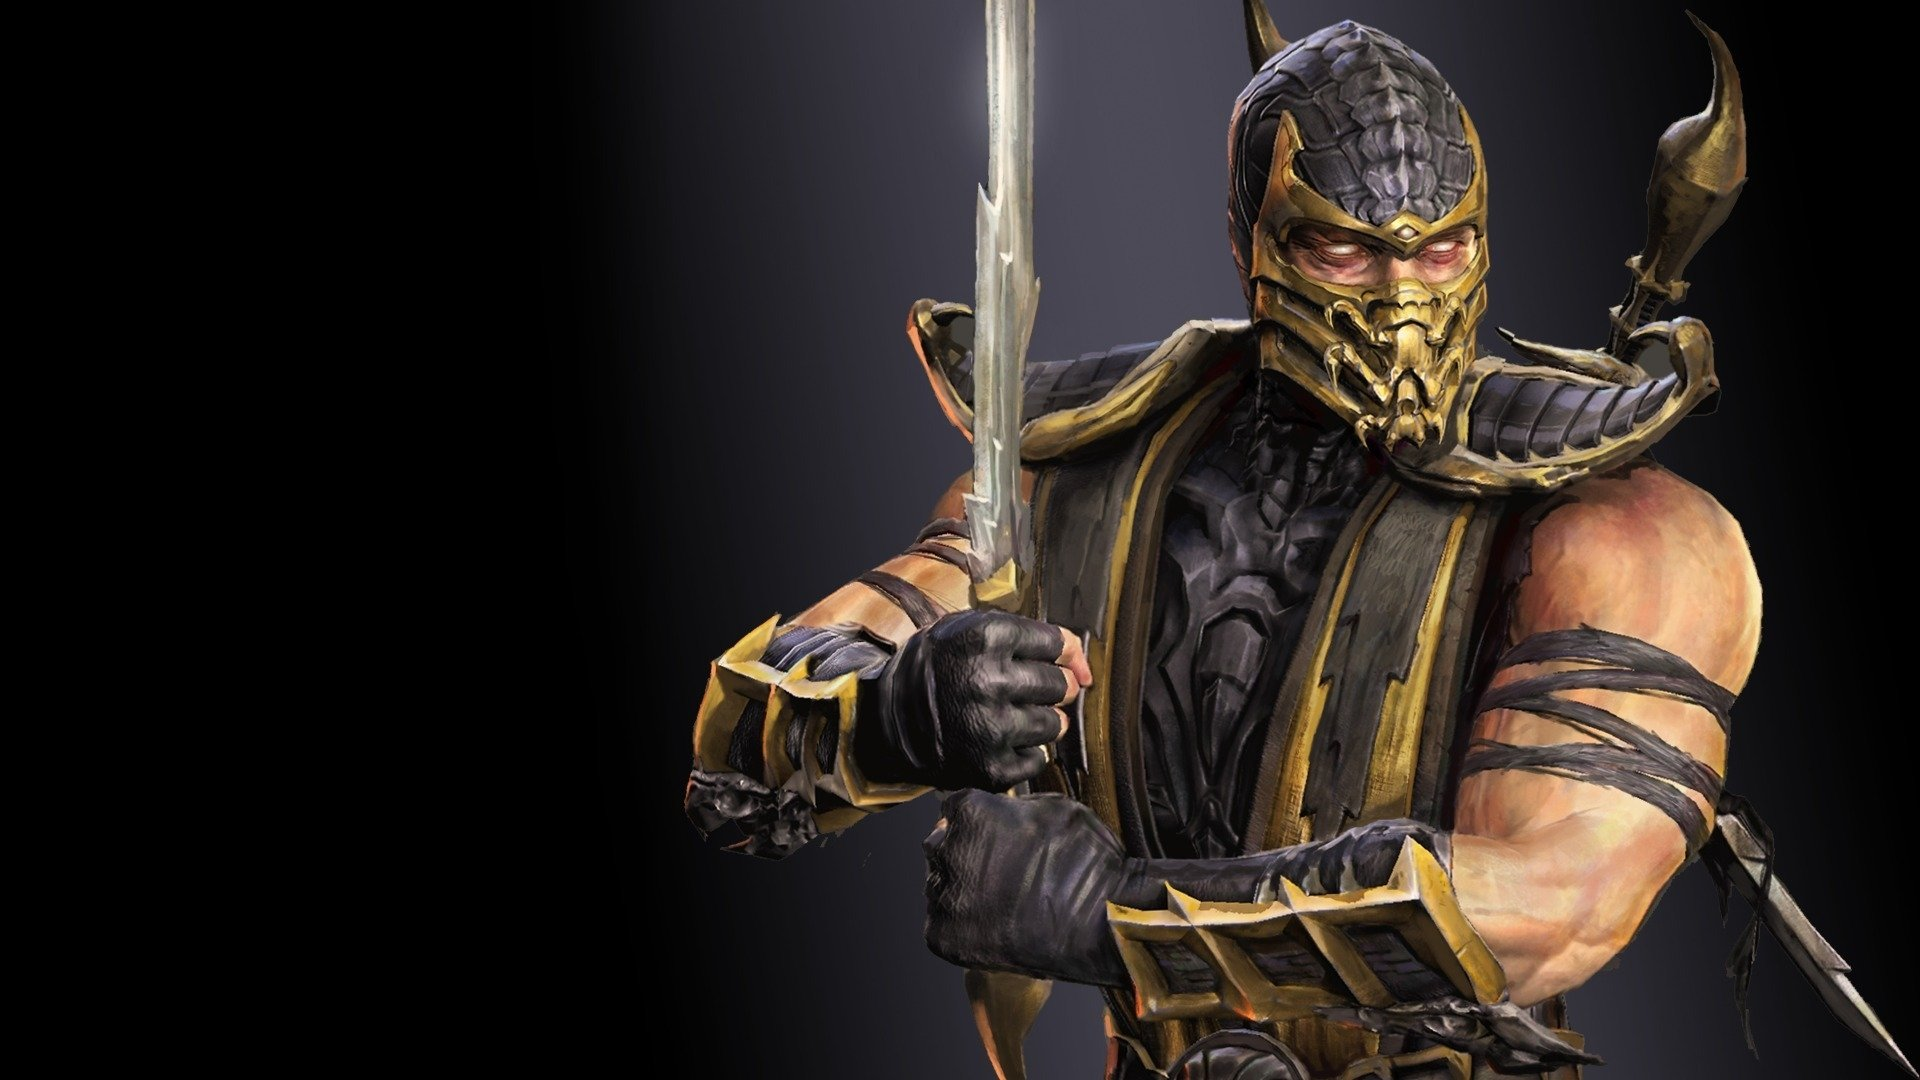 65 Scorpion Mortal Kombat Hd Wallpapers Background Images